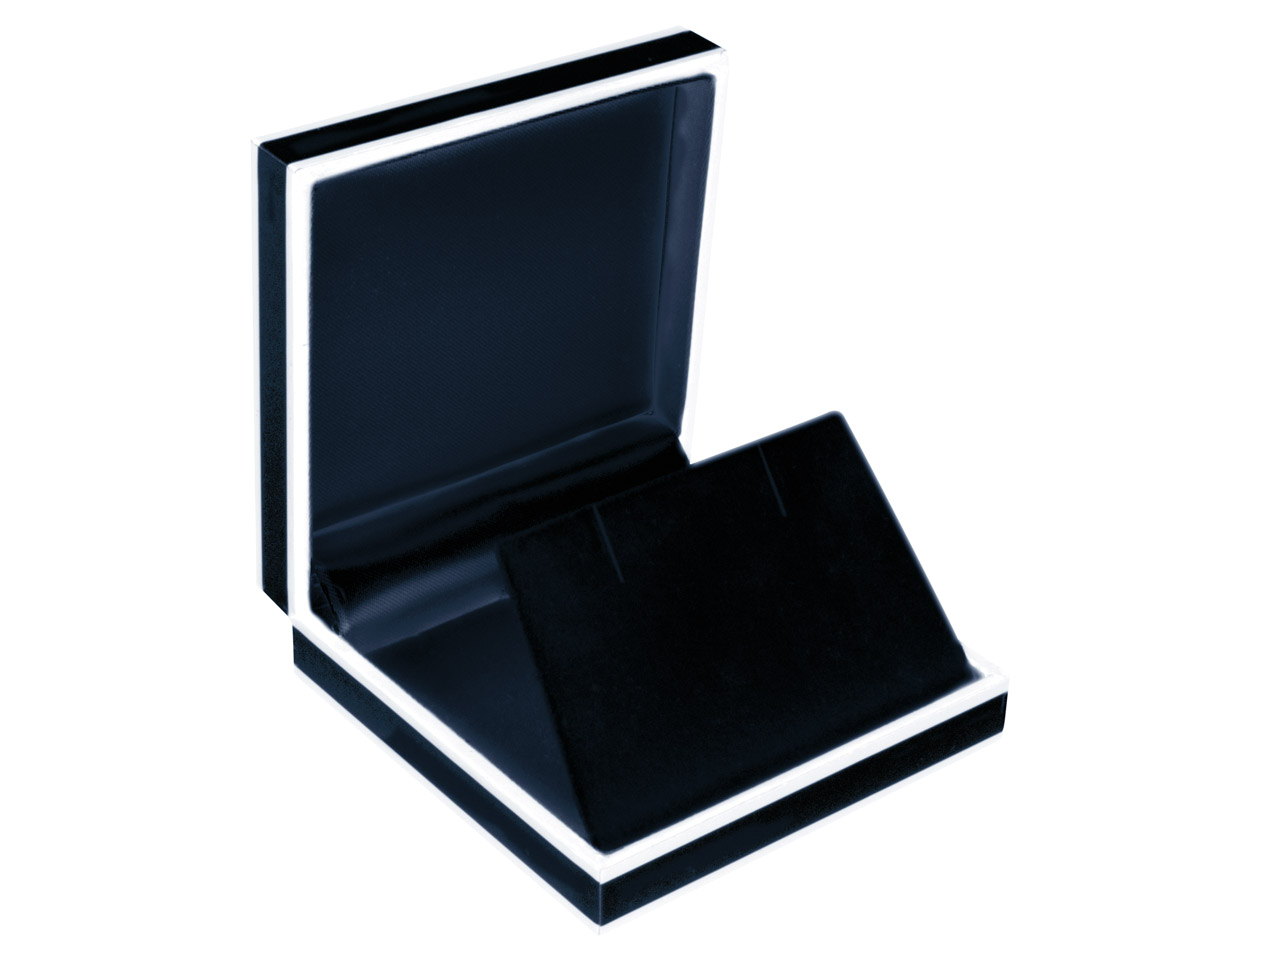 Black Monochrome Universal Box